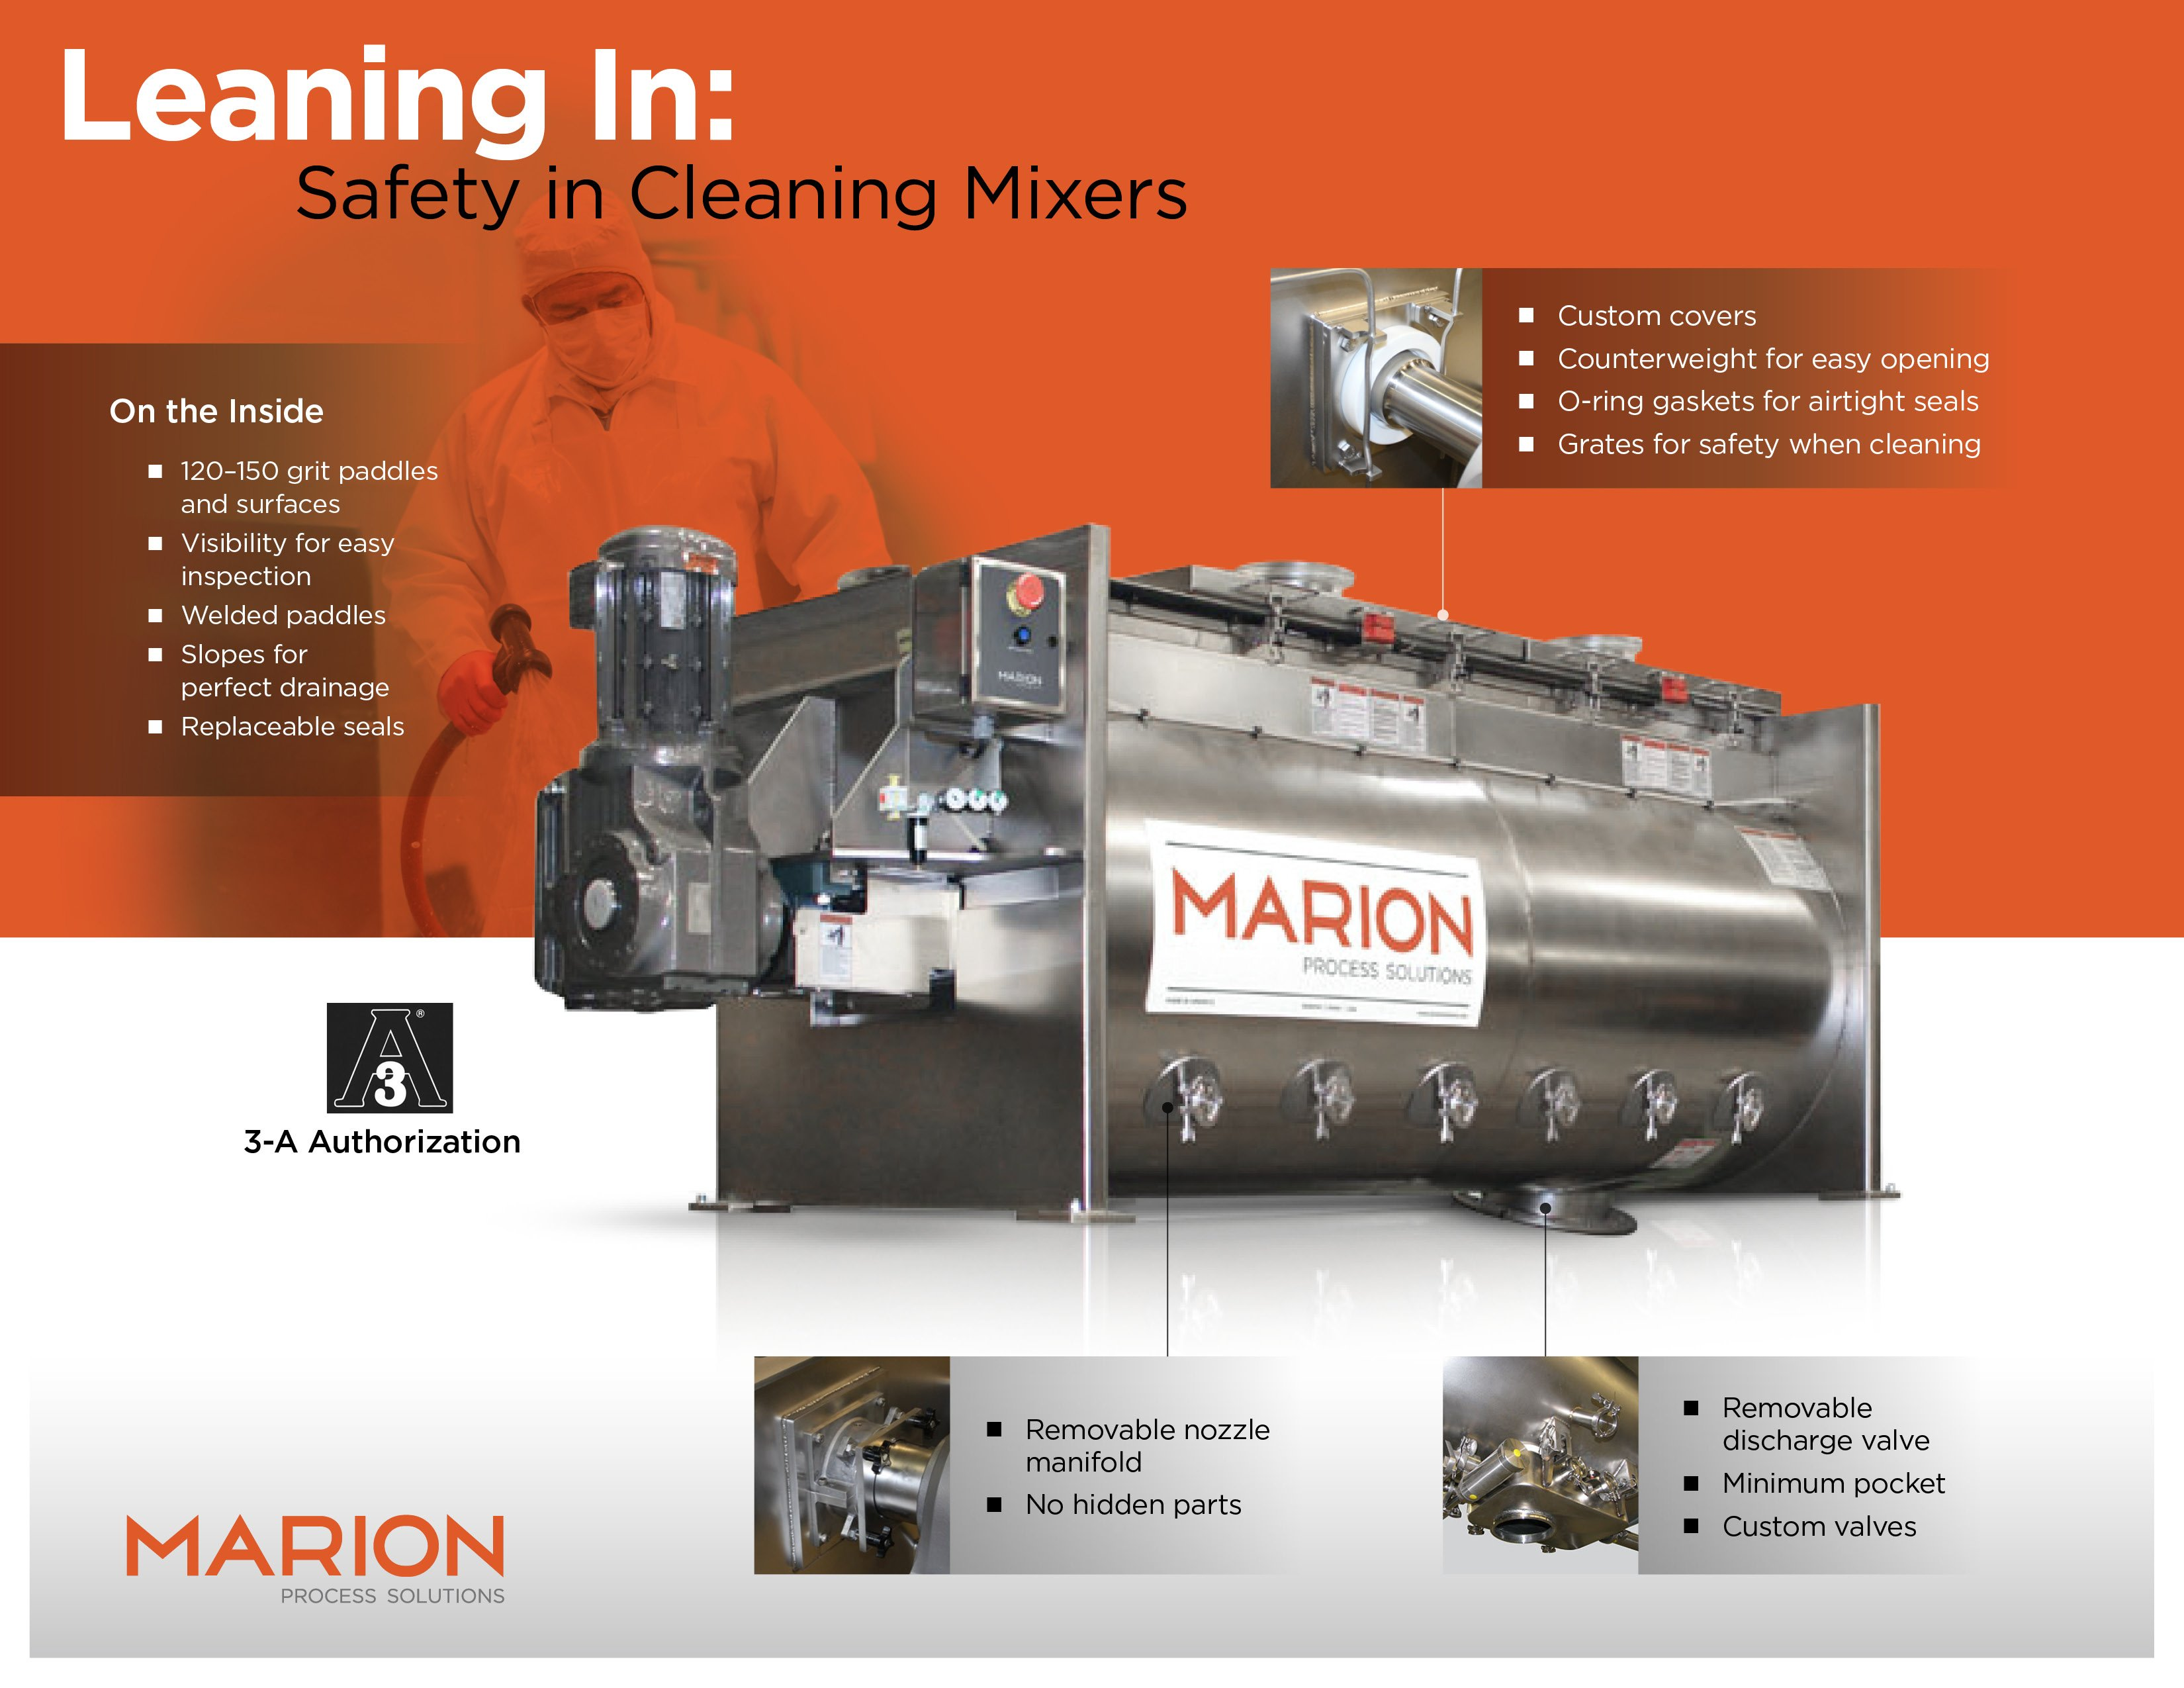 Leaning In: Safety in Cleaning Mixers